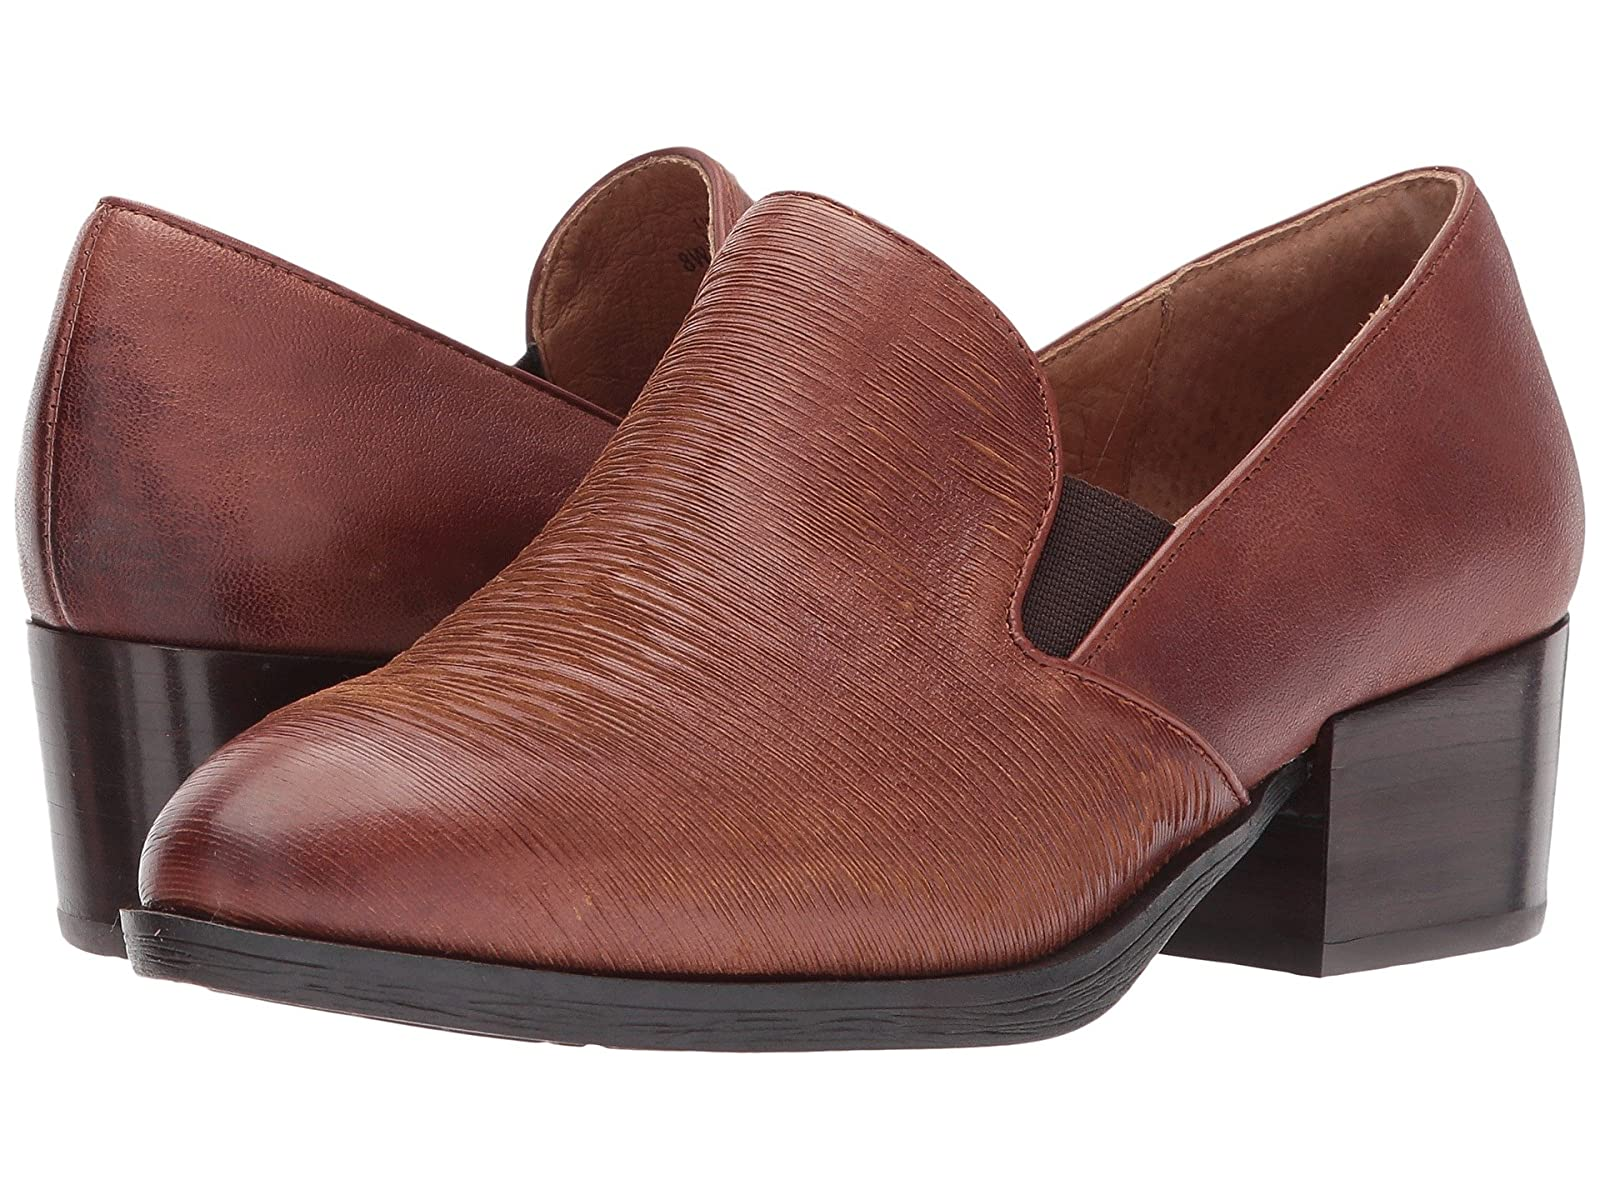 Sofft VelinaCheap and distinctive eye-catching shoes